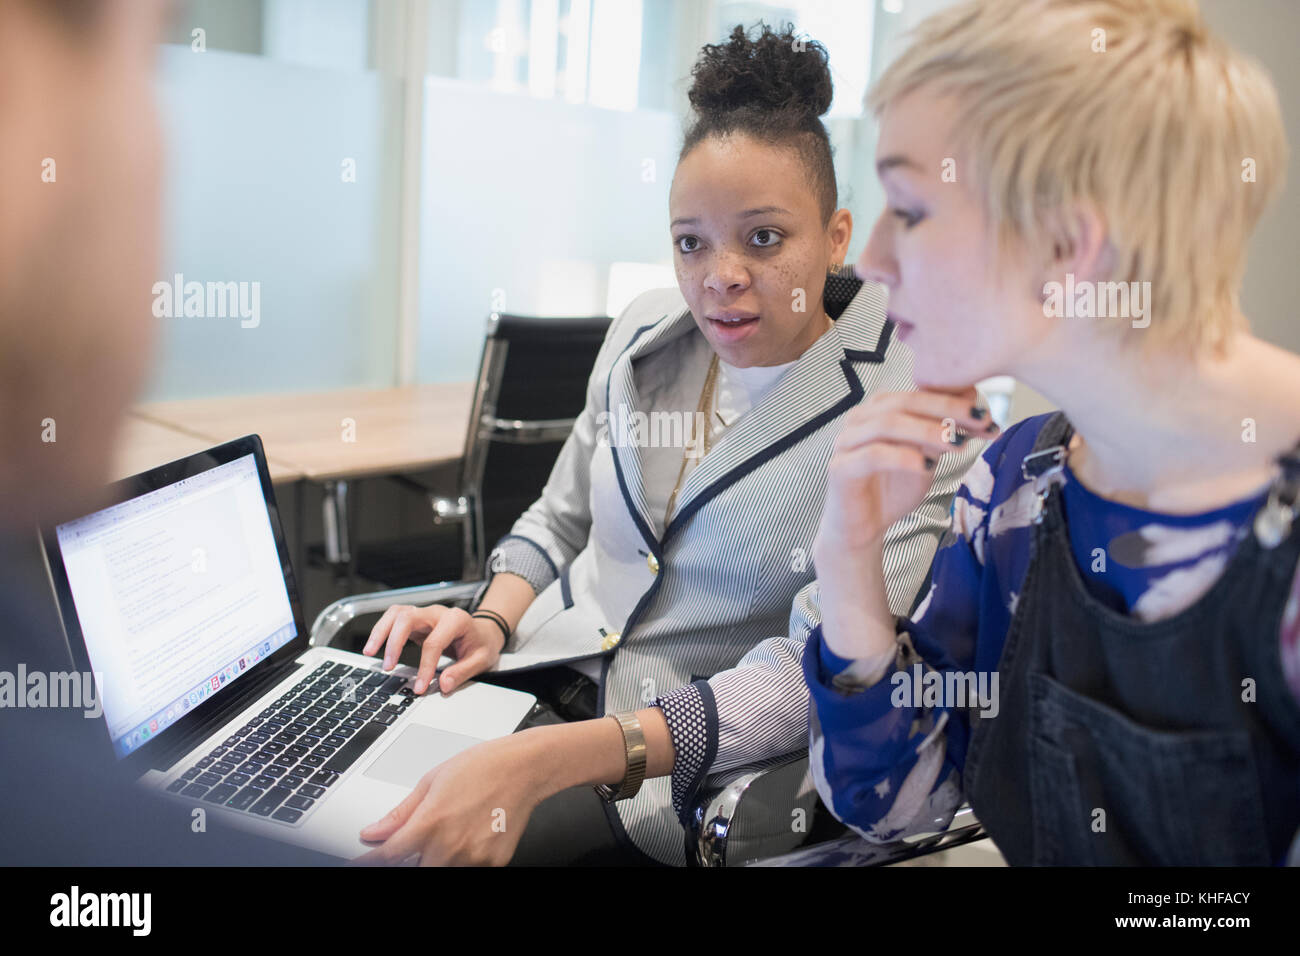 Group of young professionals collaborating in office with their laptops - Stock Image